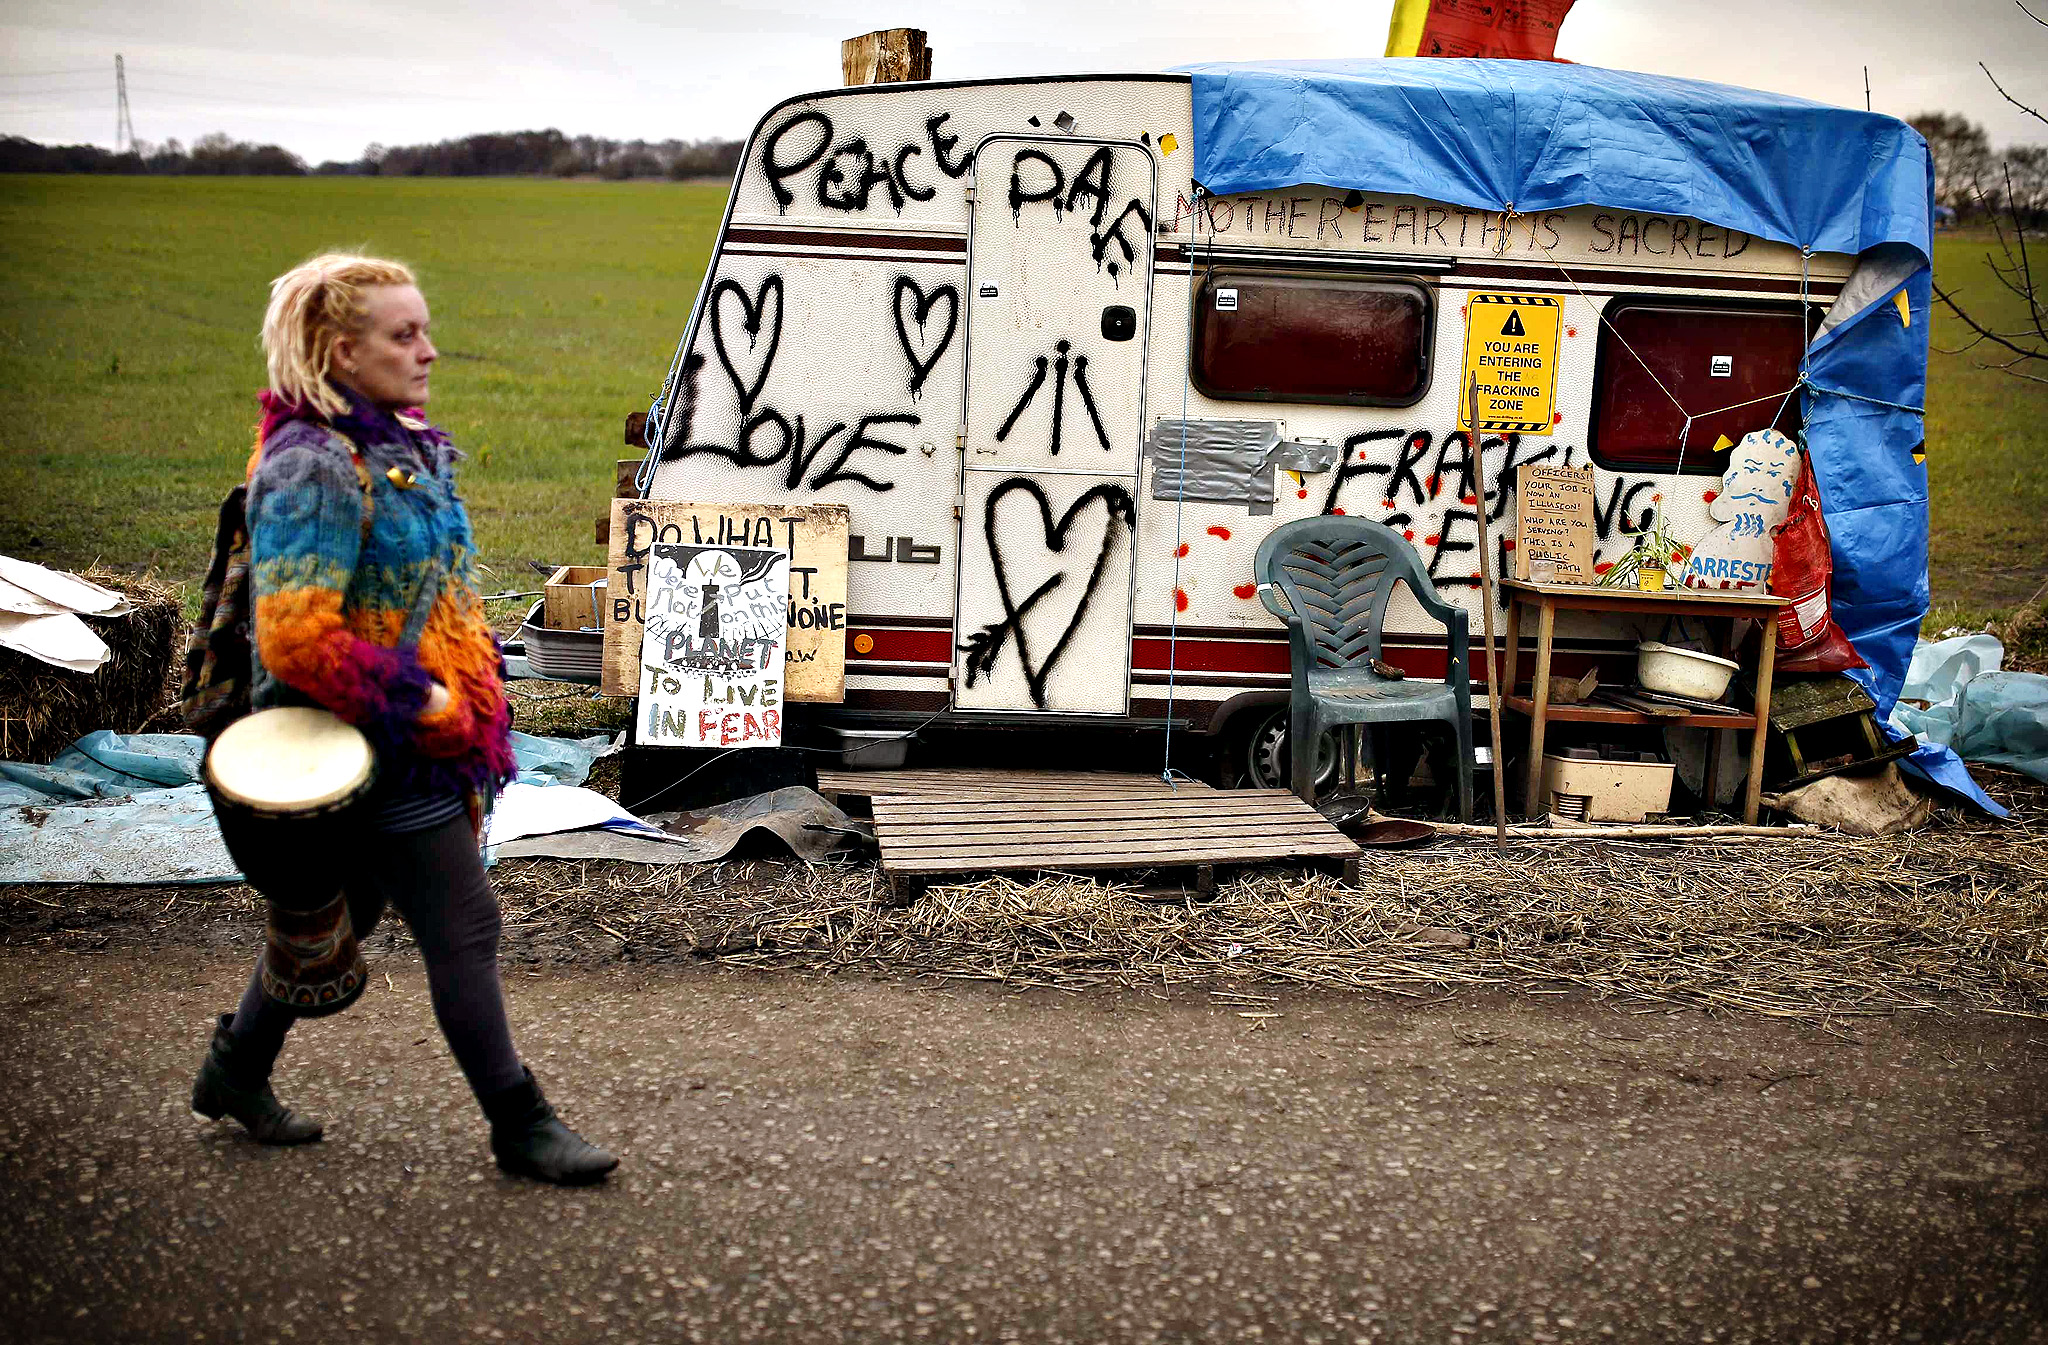 A woman walks past a graffiti covered caravan at a protest camp set up close to the entrance of the IGas exploratory gas drilling site at Barton Moss, near Manchester...A woman walks past a graffiti covered caravan at a protest camp set up close to the entrance of the IGas exploratory gas drilling site at Barton Moss, near Manchester, northern England, March 6, 2014. Britain may be a prime location for shale gas exploration in Europe, but a lack of onshore drilling infrastructure and local opposition will impede development, experts and geologists said at a shale conference in London.